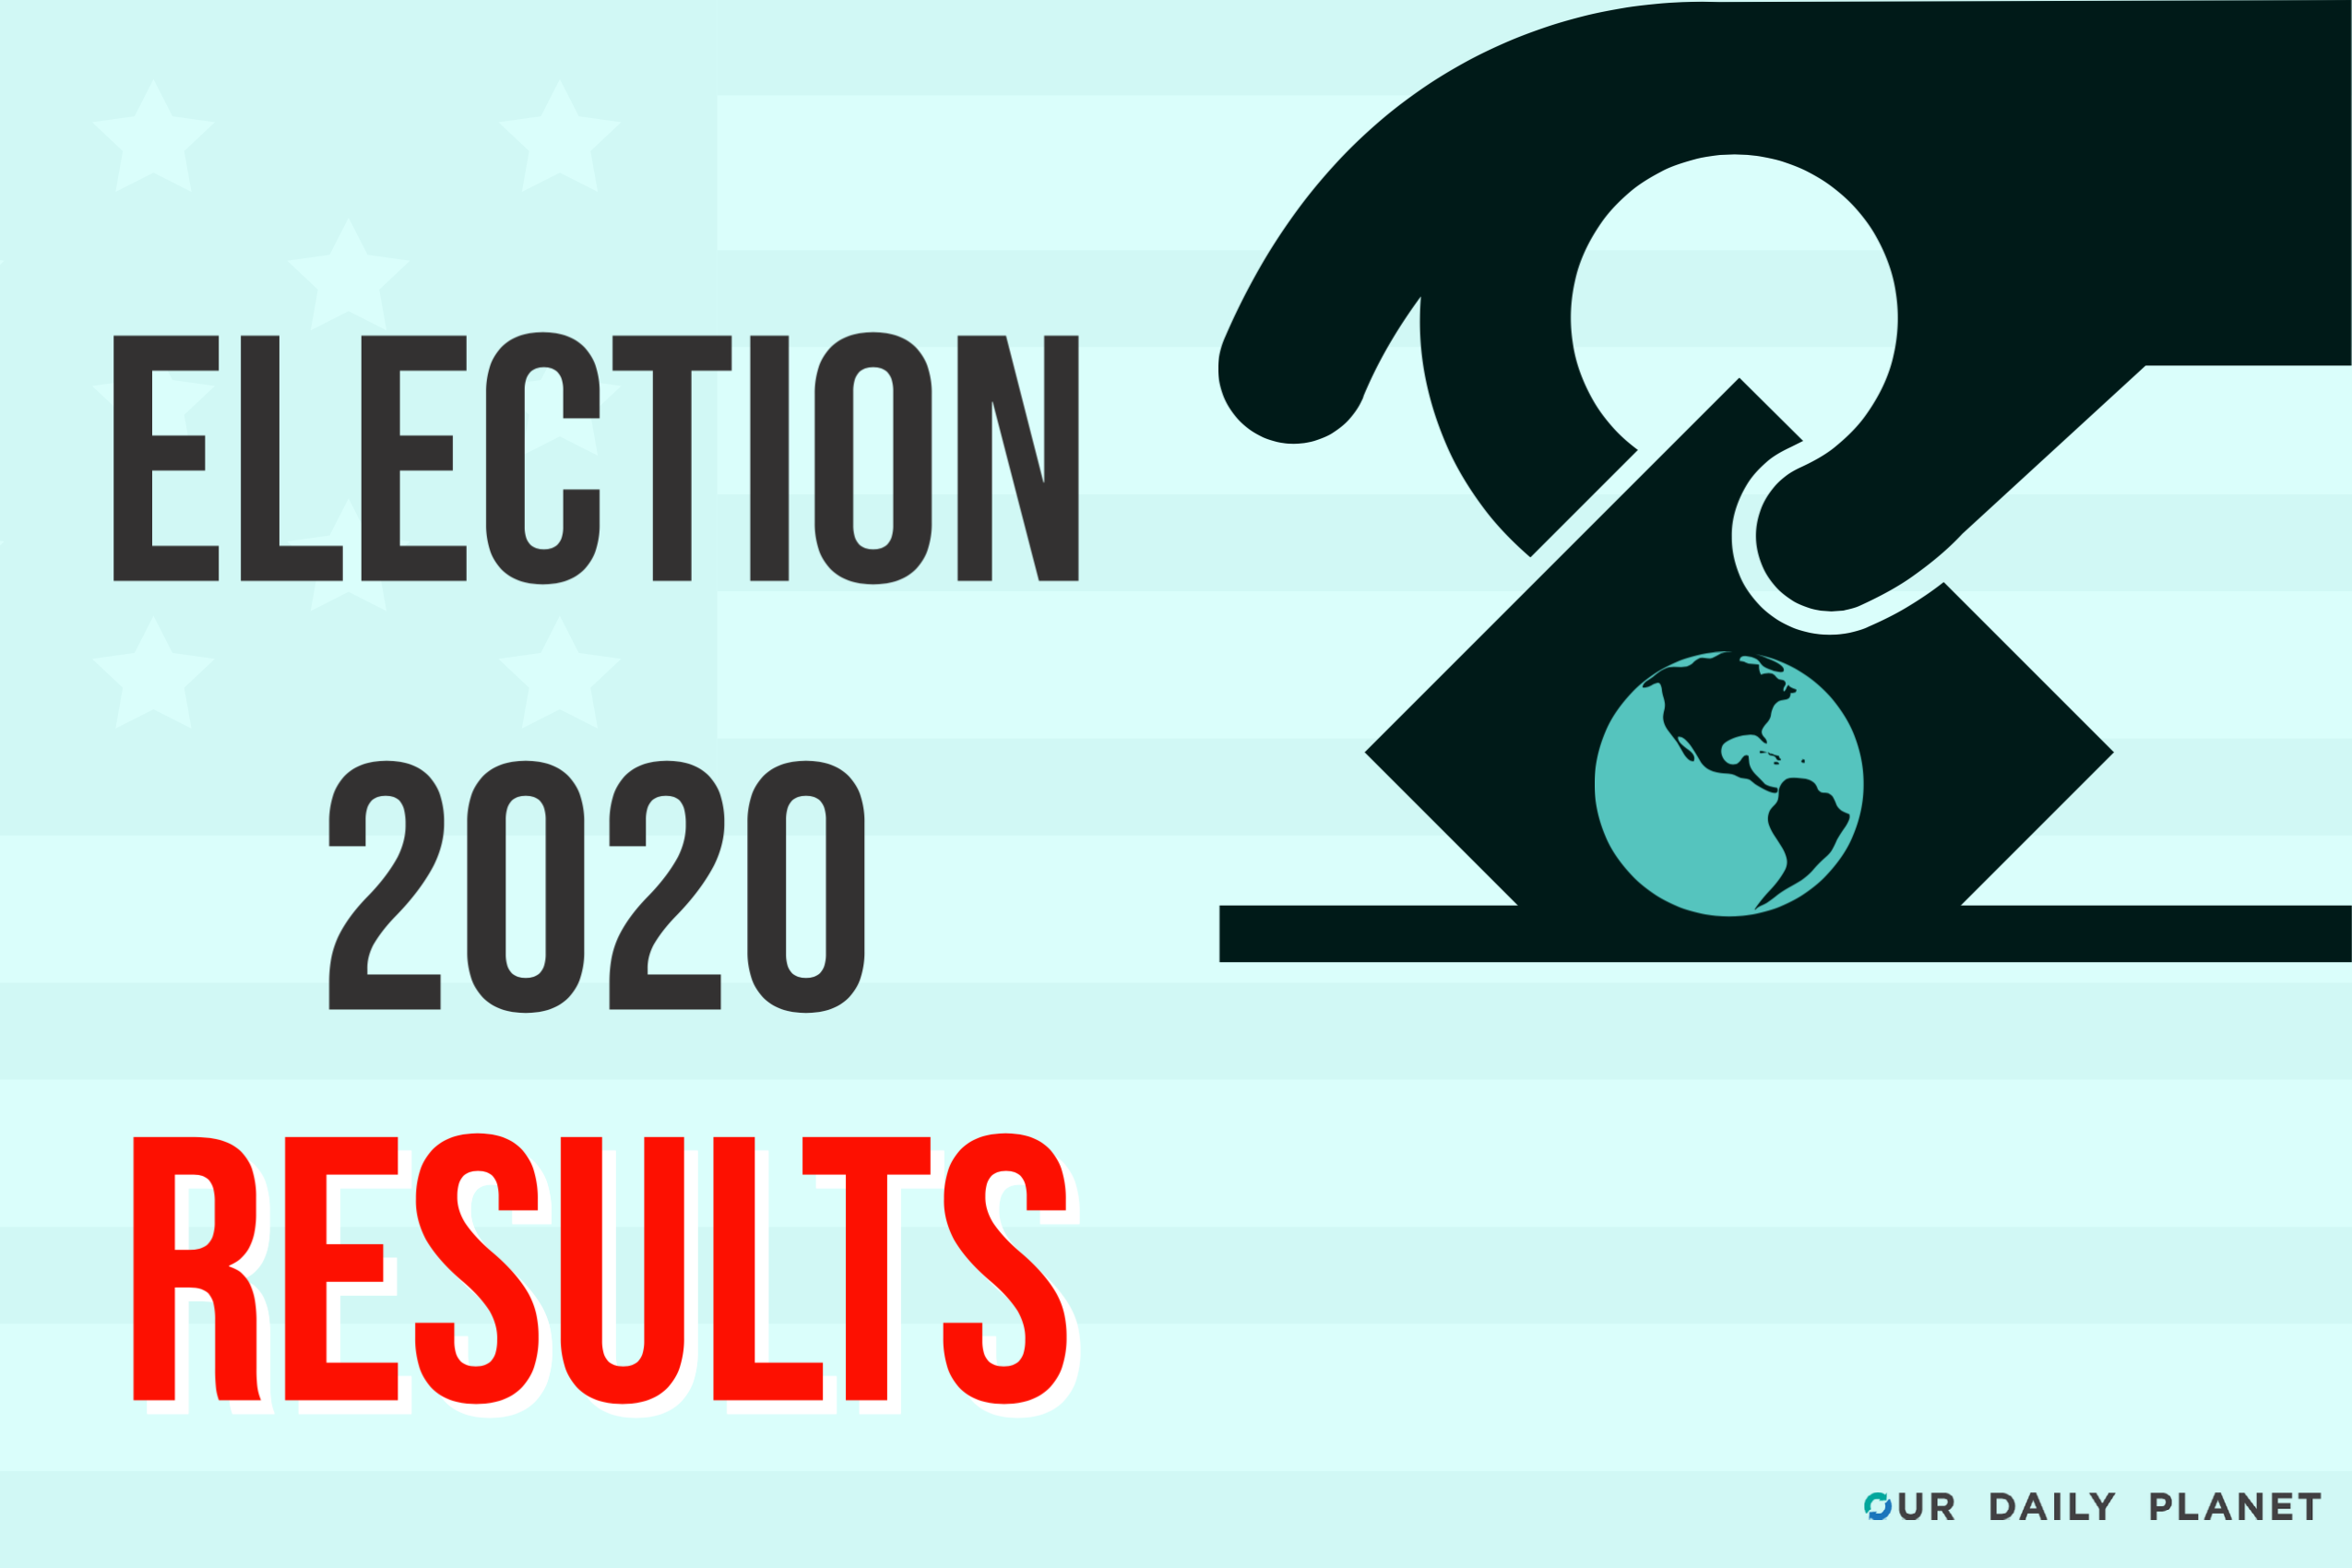 Election Results 2020 (So Far)